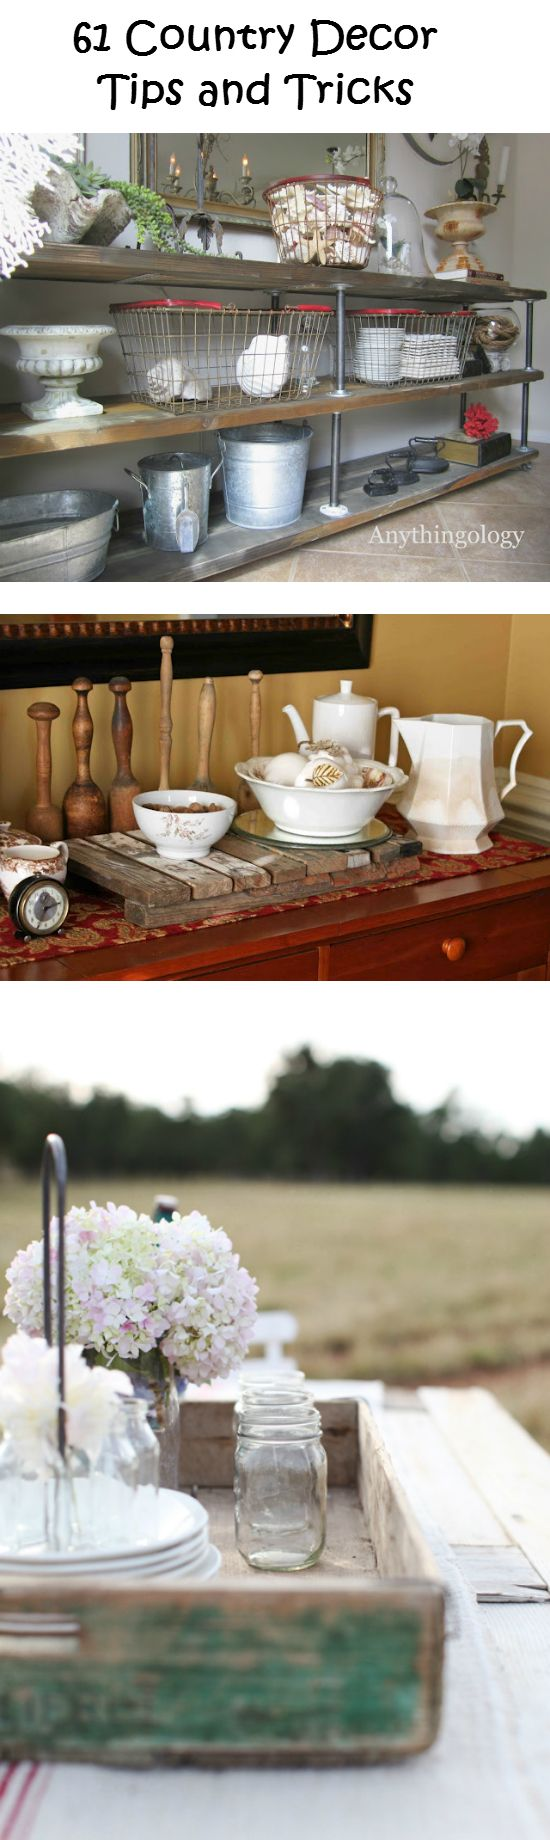 61 Country Decor Tips and Tricks just the top picture for the dining room